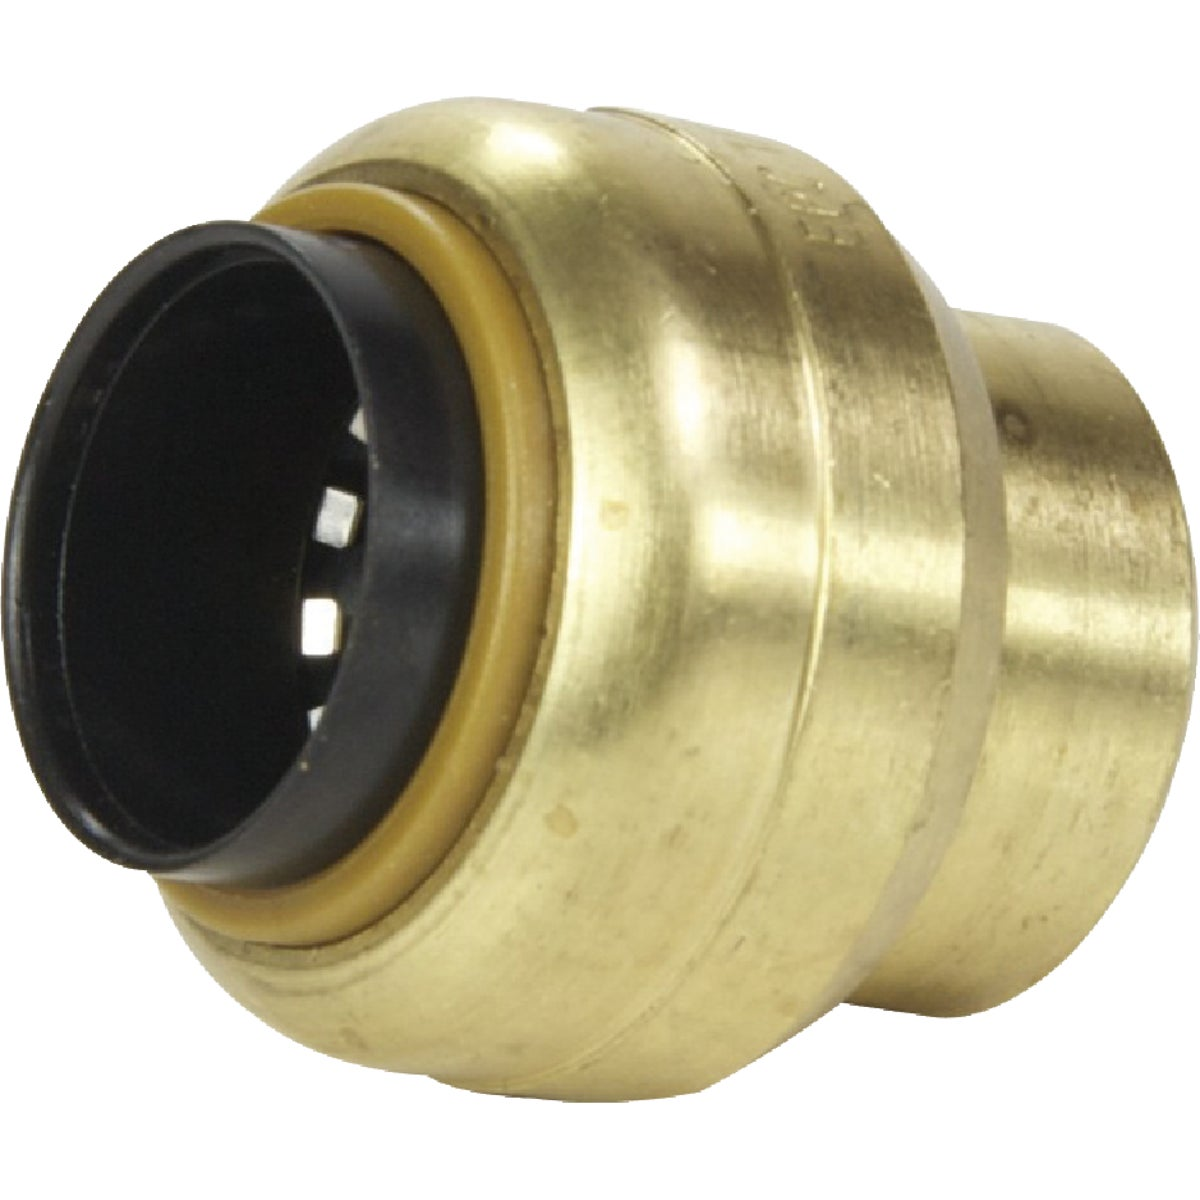 "3/4"" PUSH CAP - U518LFA by Cash Acme"